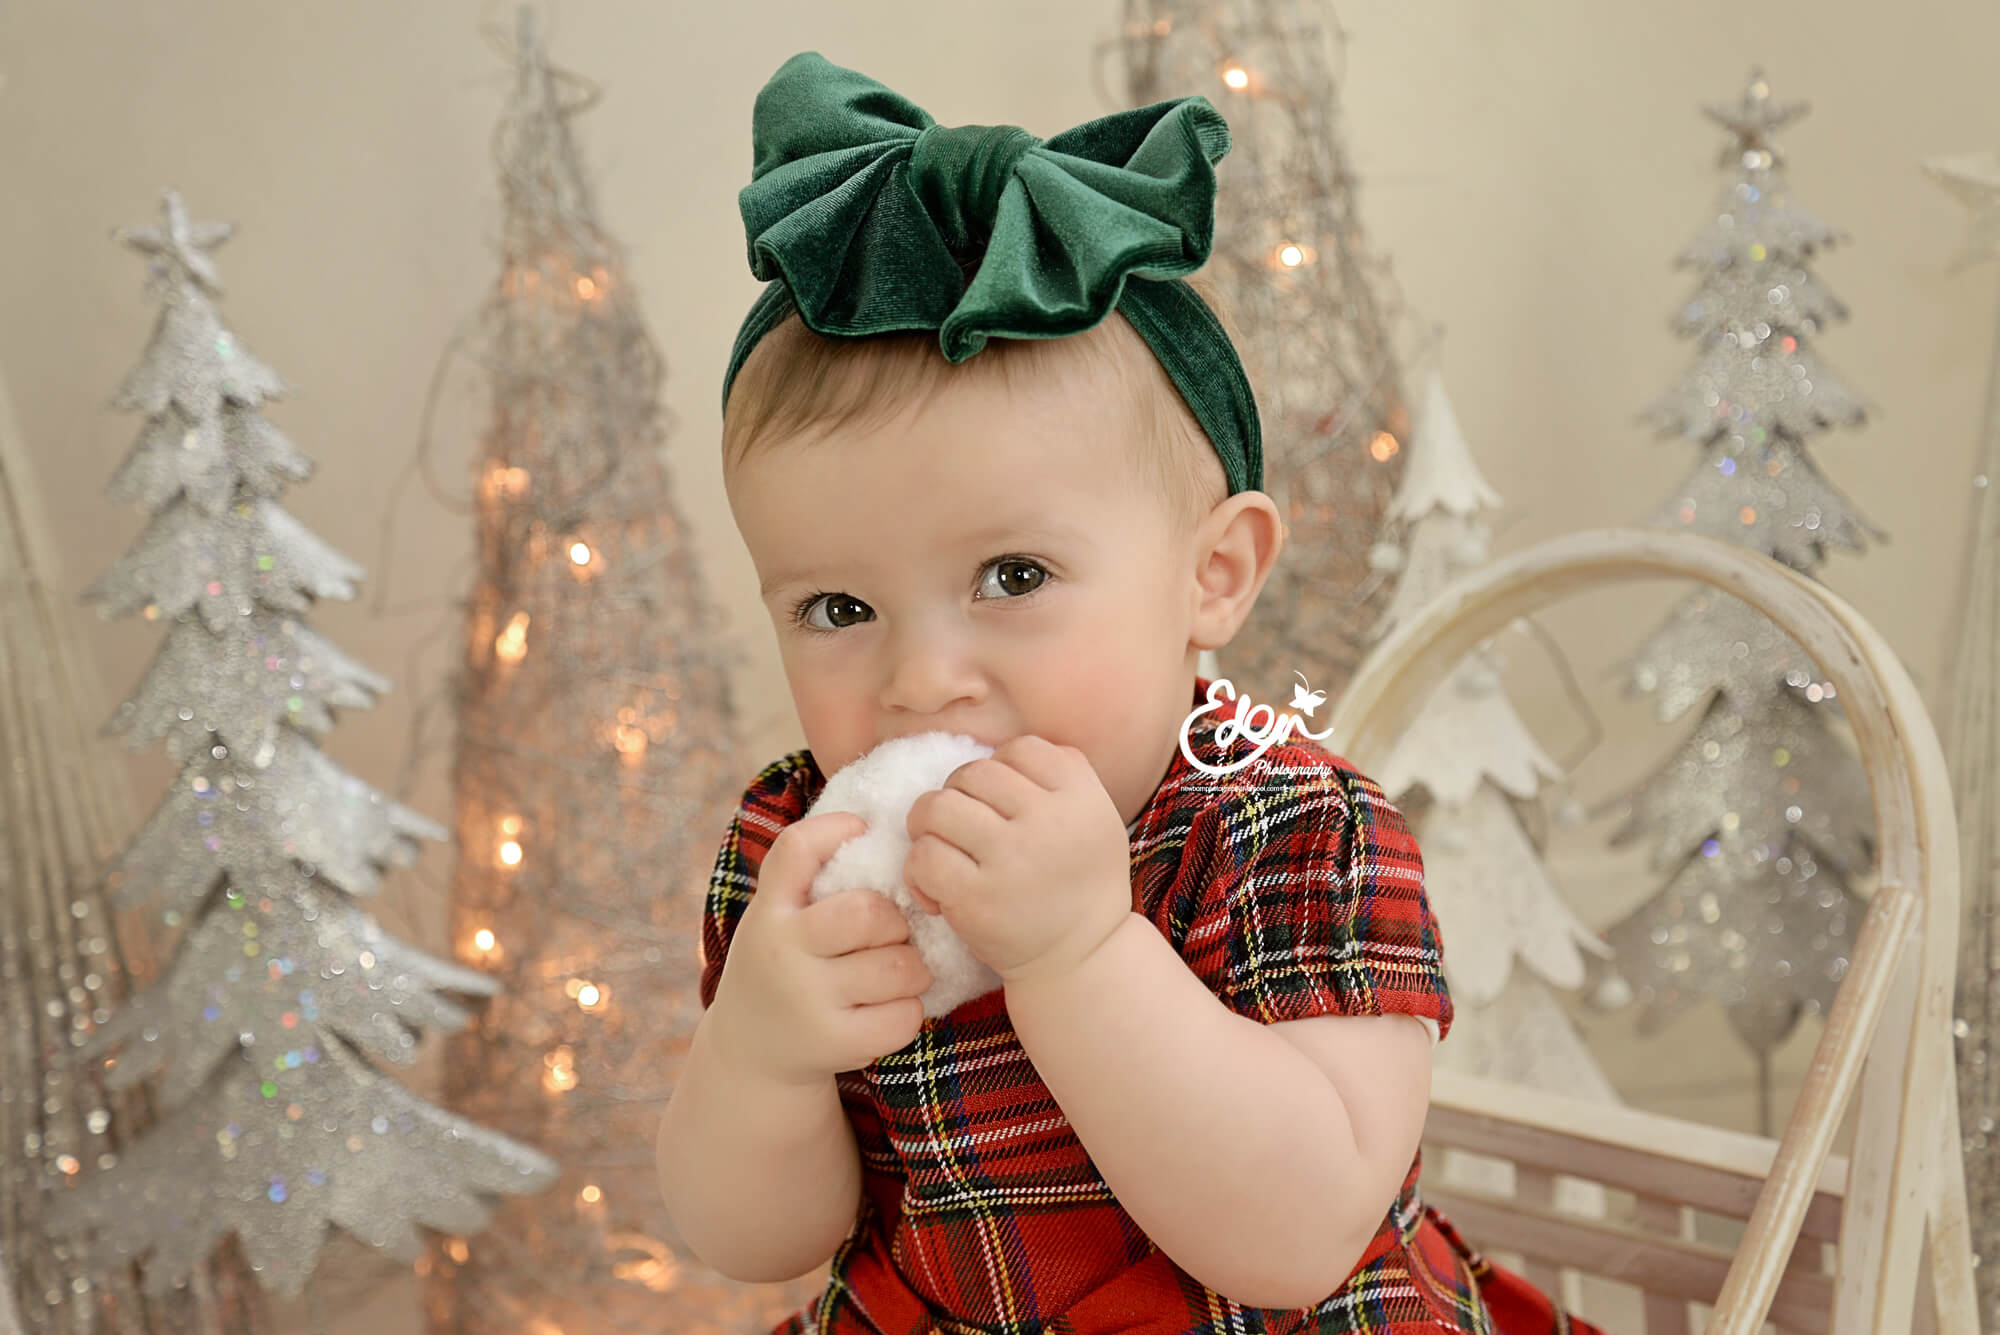 Baby girl sitting in front of Christmas Decor.